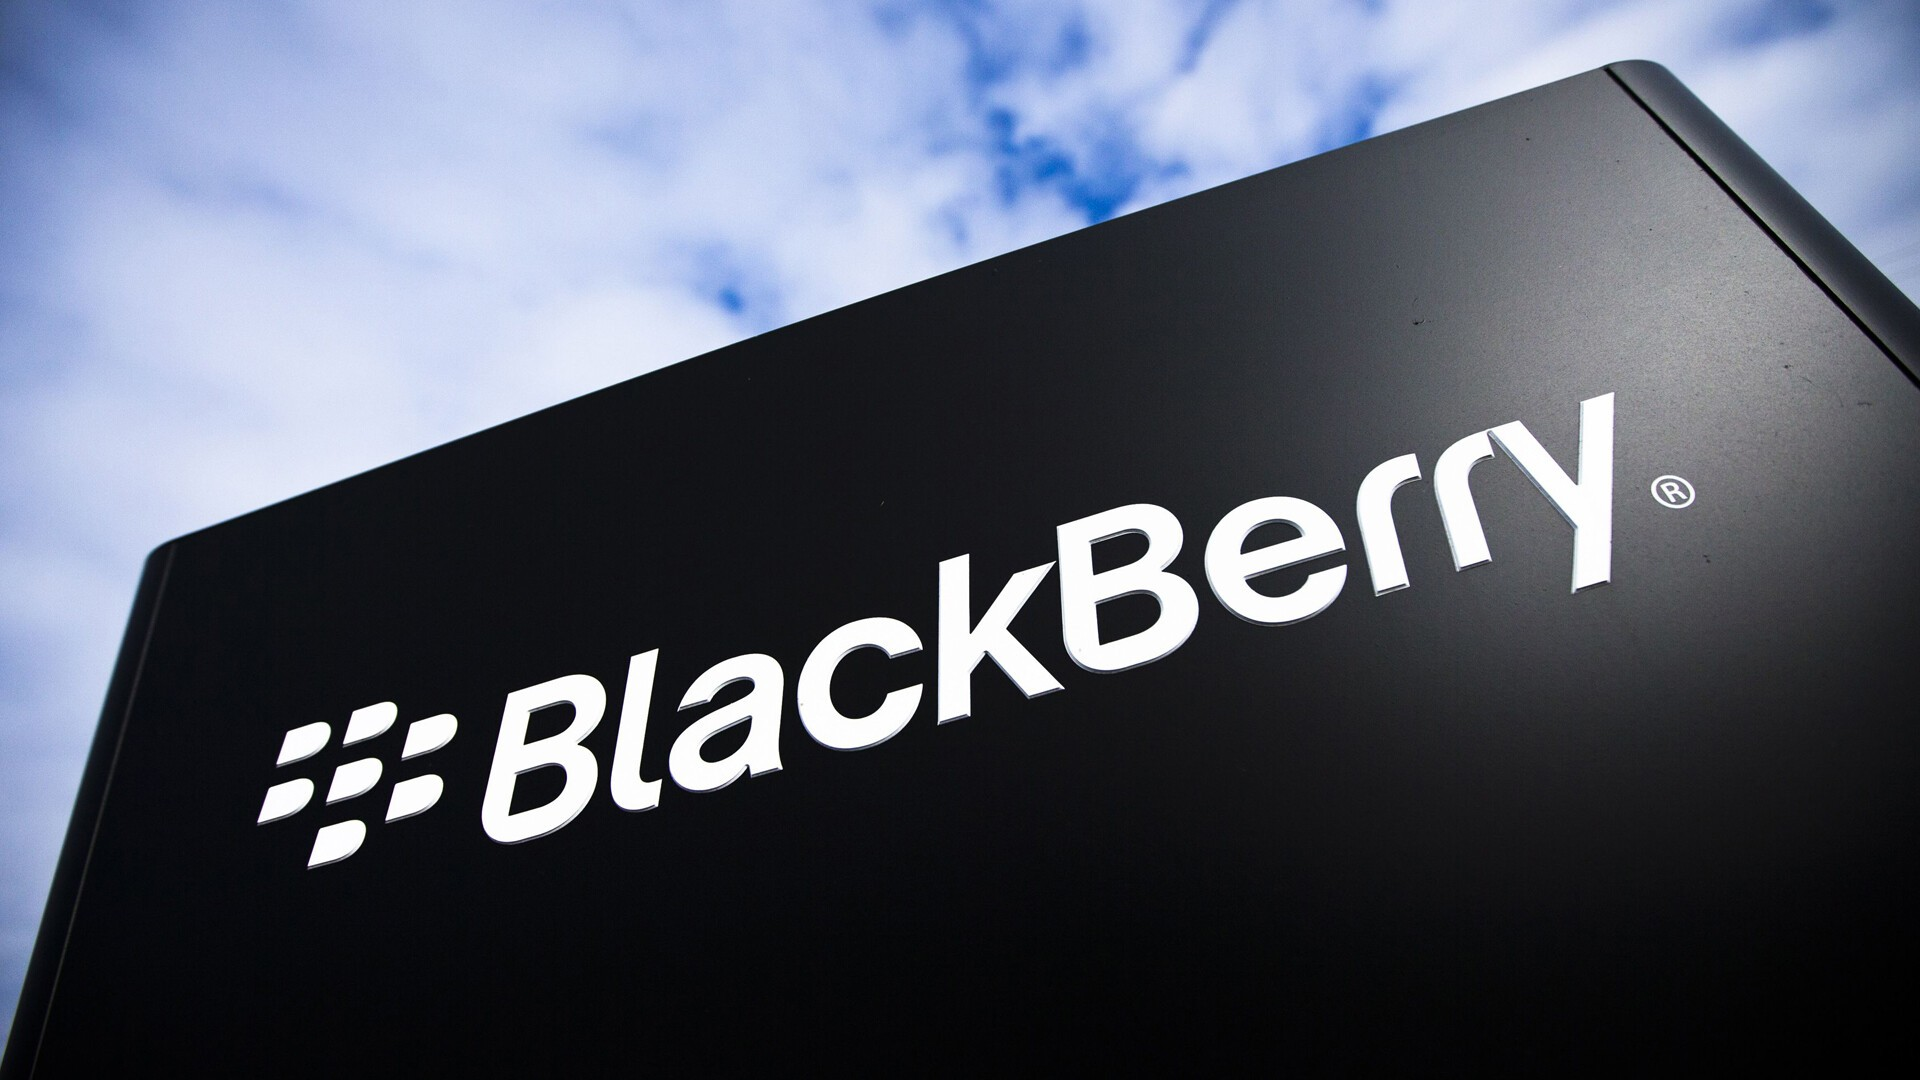 BlackBerry to announce First Quarter Fiscal 2016 results on June 23